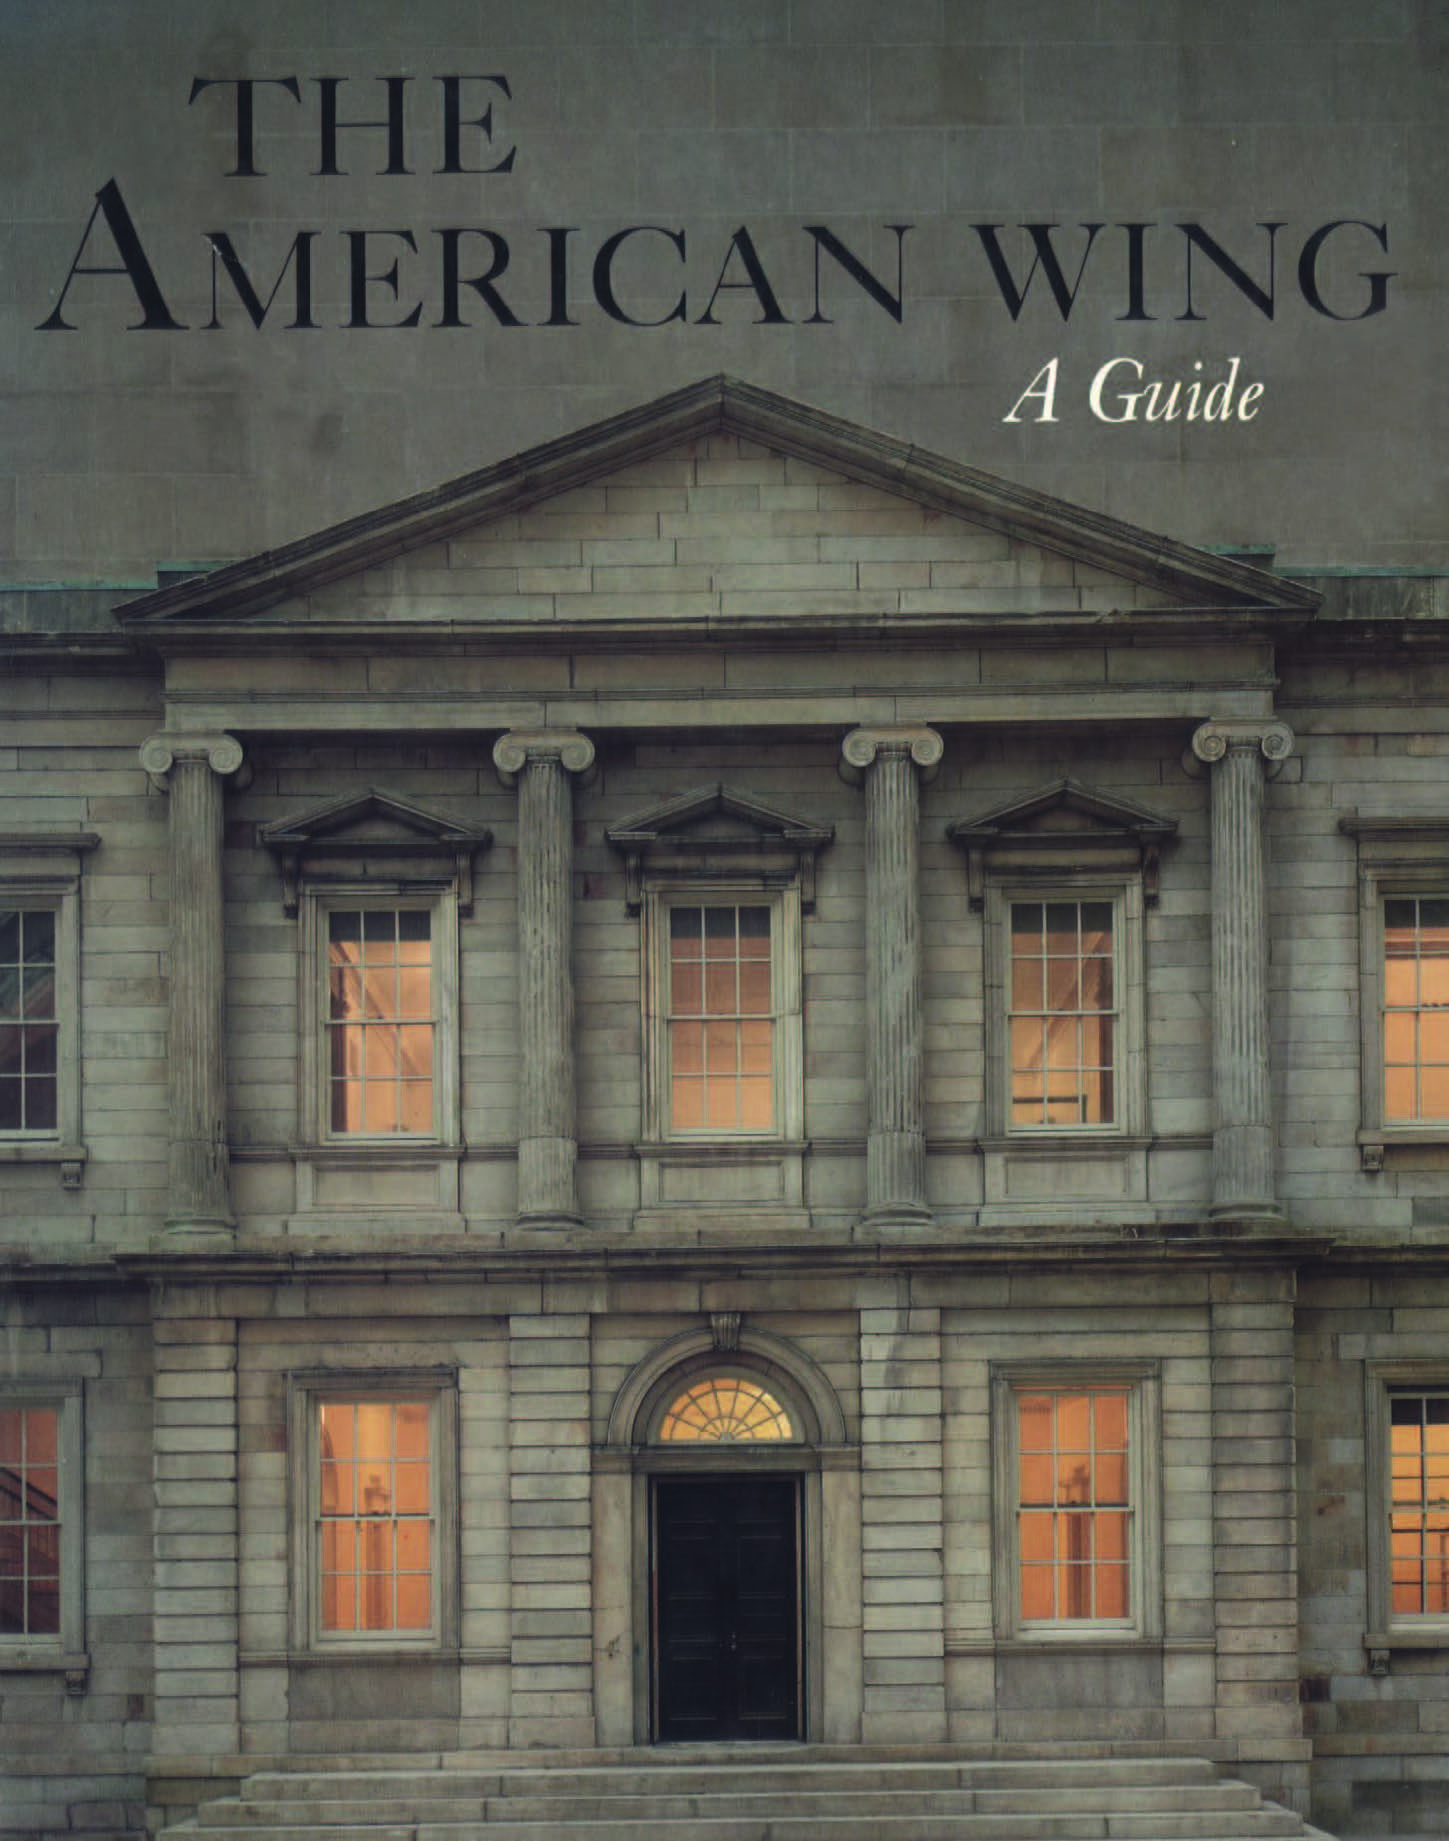 The American Wing : A Guide / by Marshall B. Davidson. — New York : The Metropolitan Museum of Art, 1980